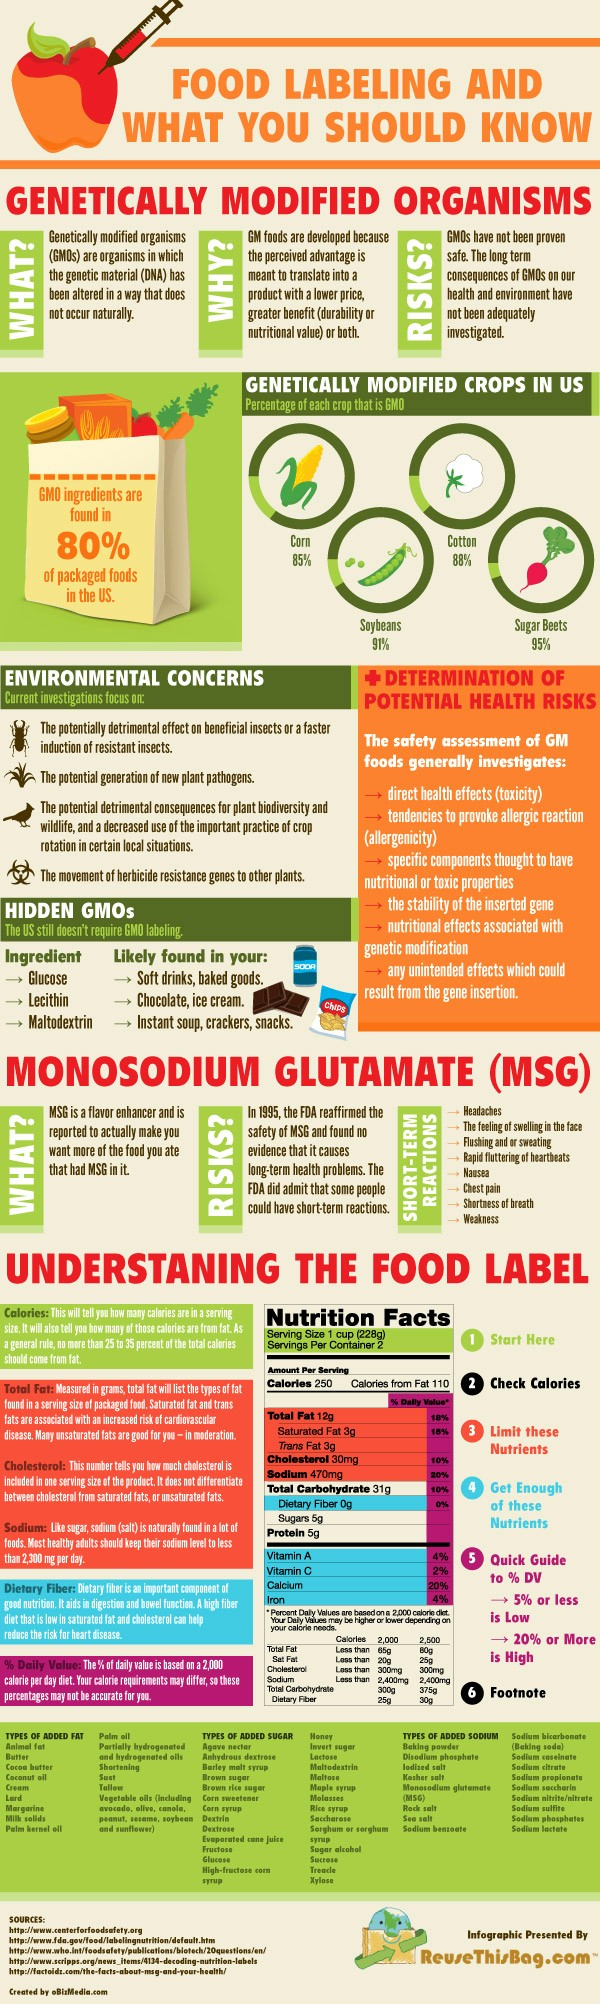 Food Labeling What You Should Know